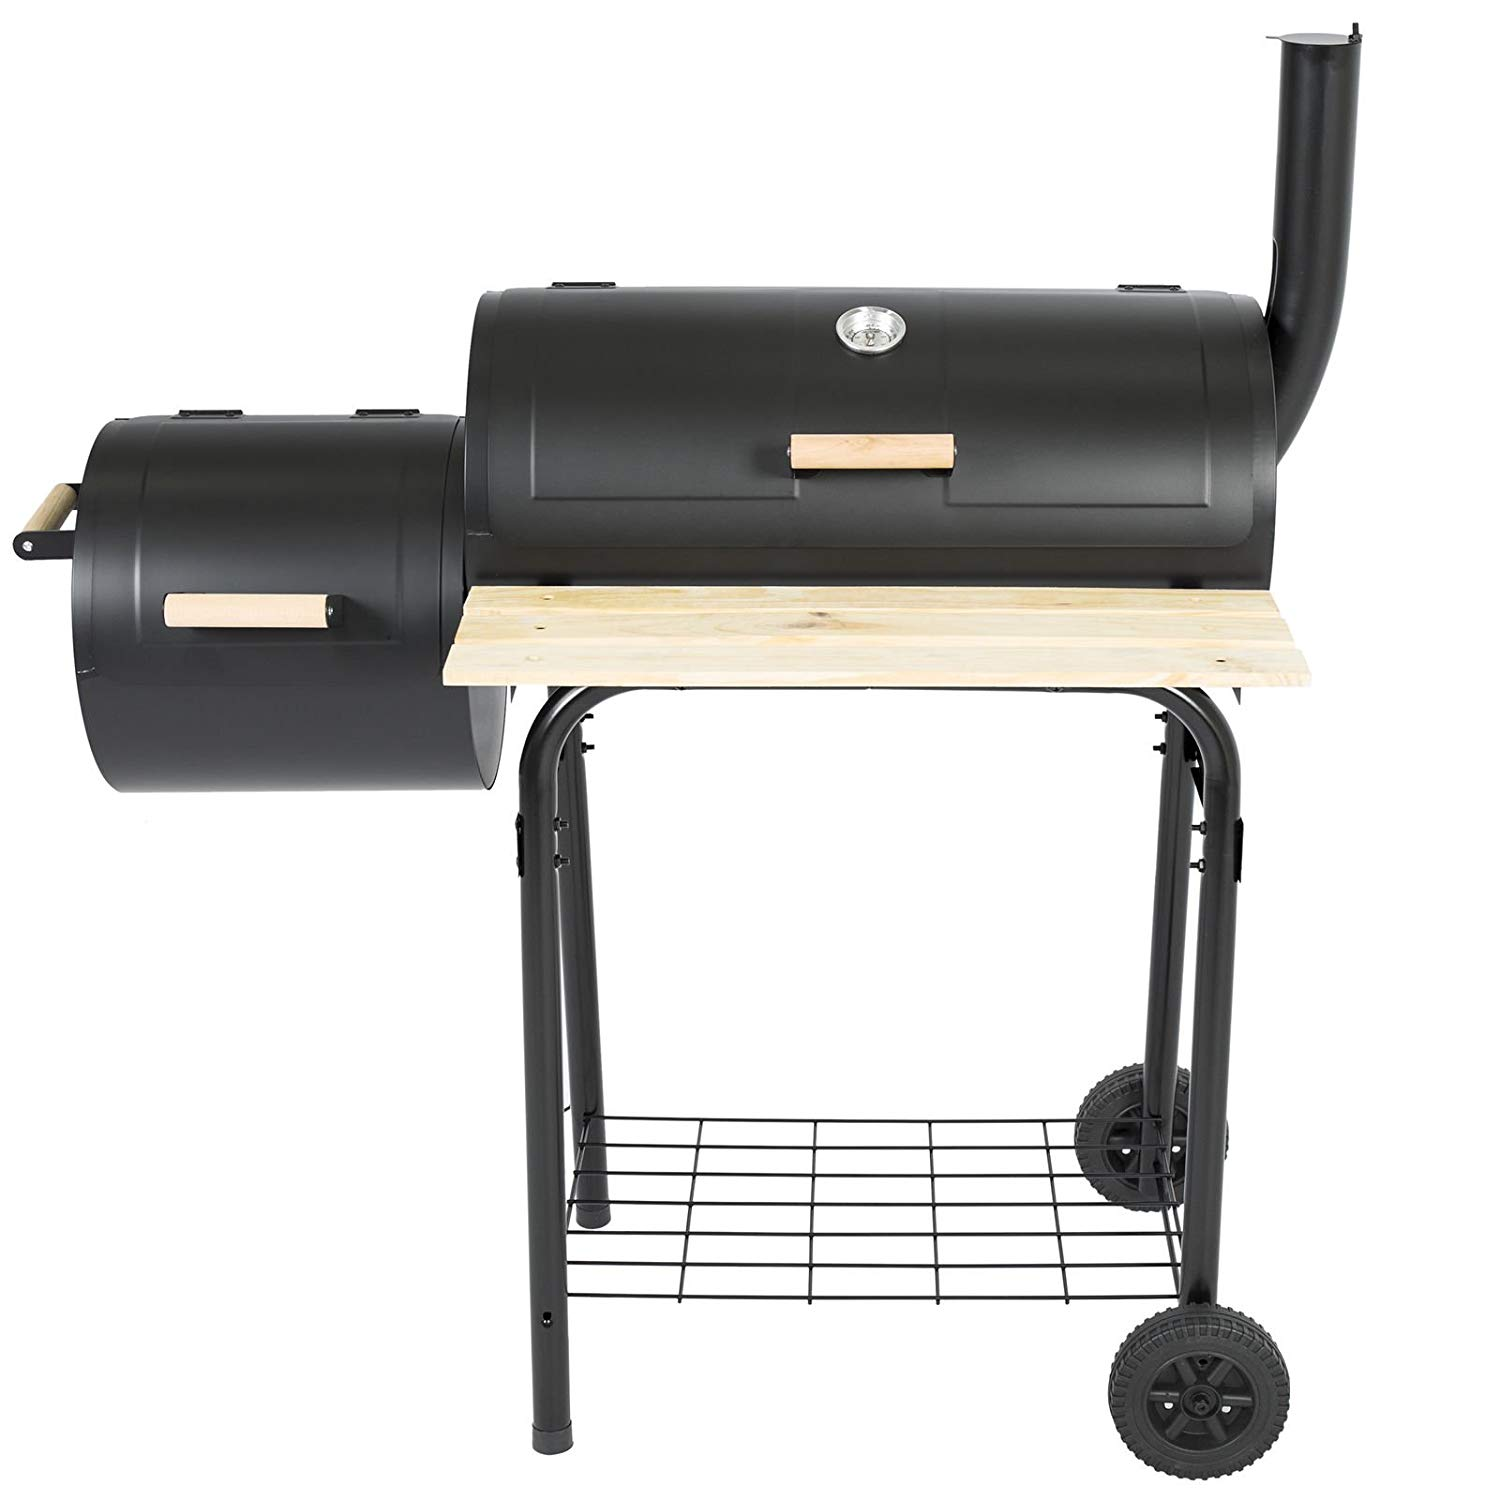 Get Quotations Dzvex Bbq Grill Charcoal Barbecue Patio Backyard Home Meat Smoker And Wood Best